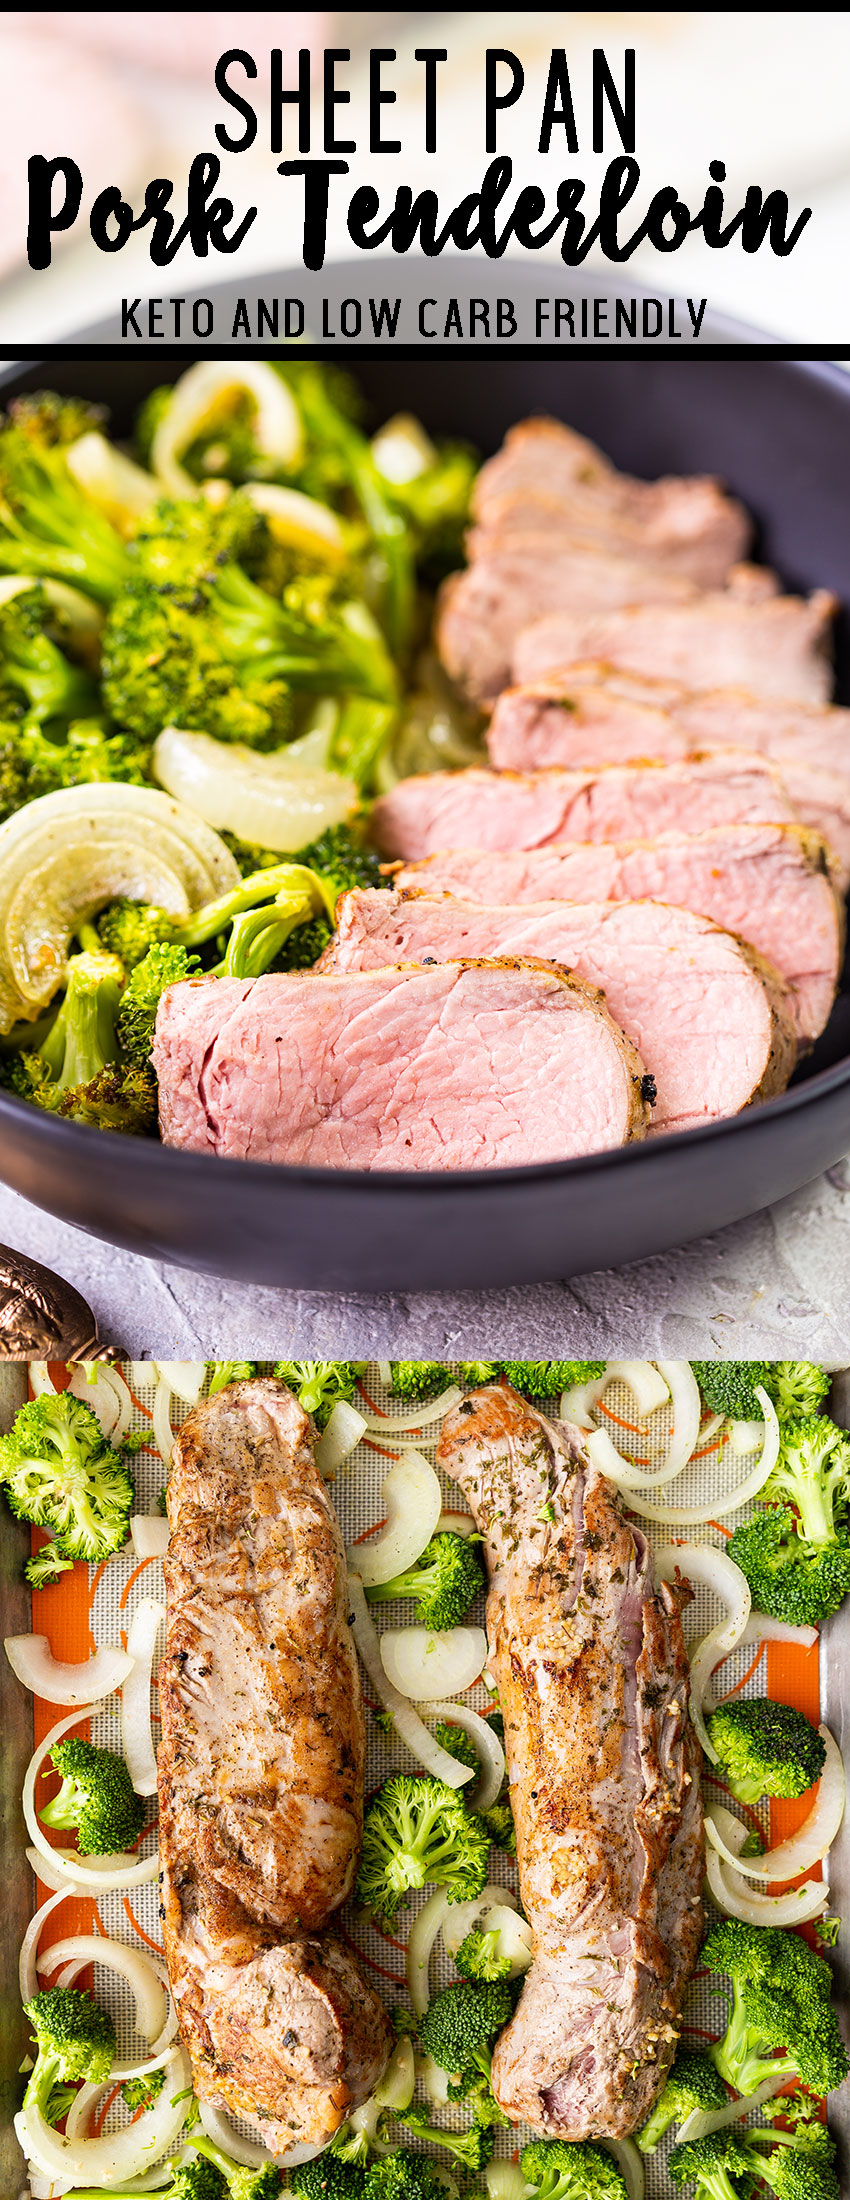 Sheet pan pork tenderloin with vegetables